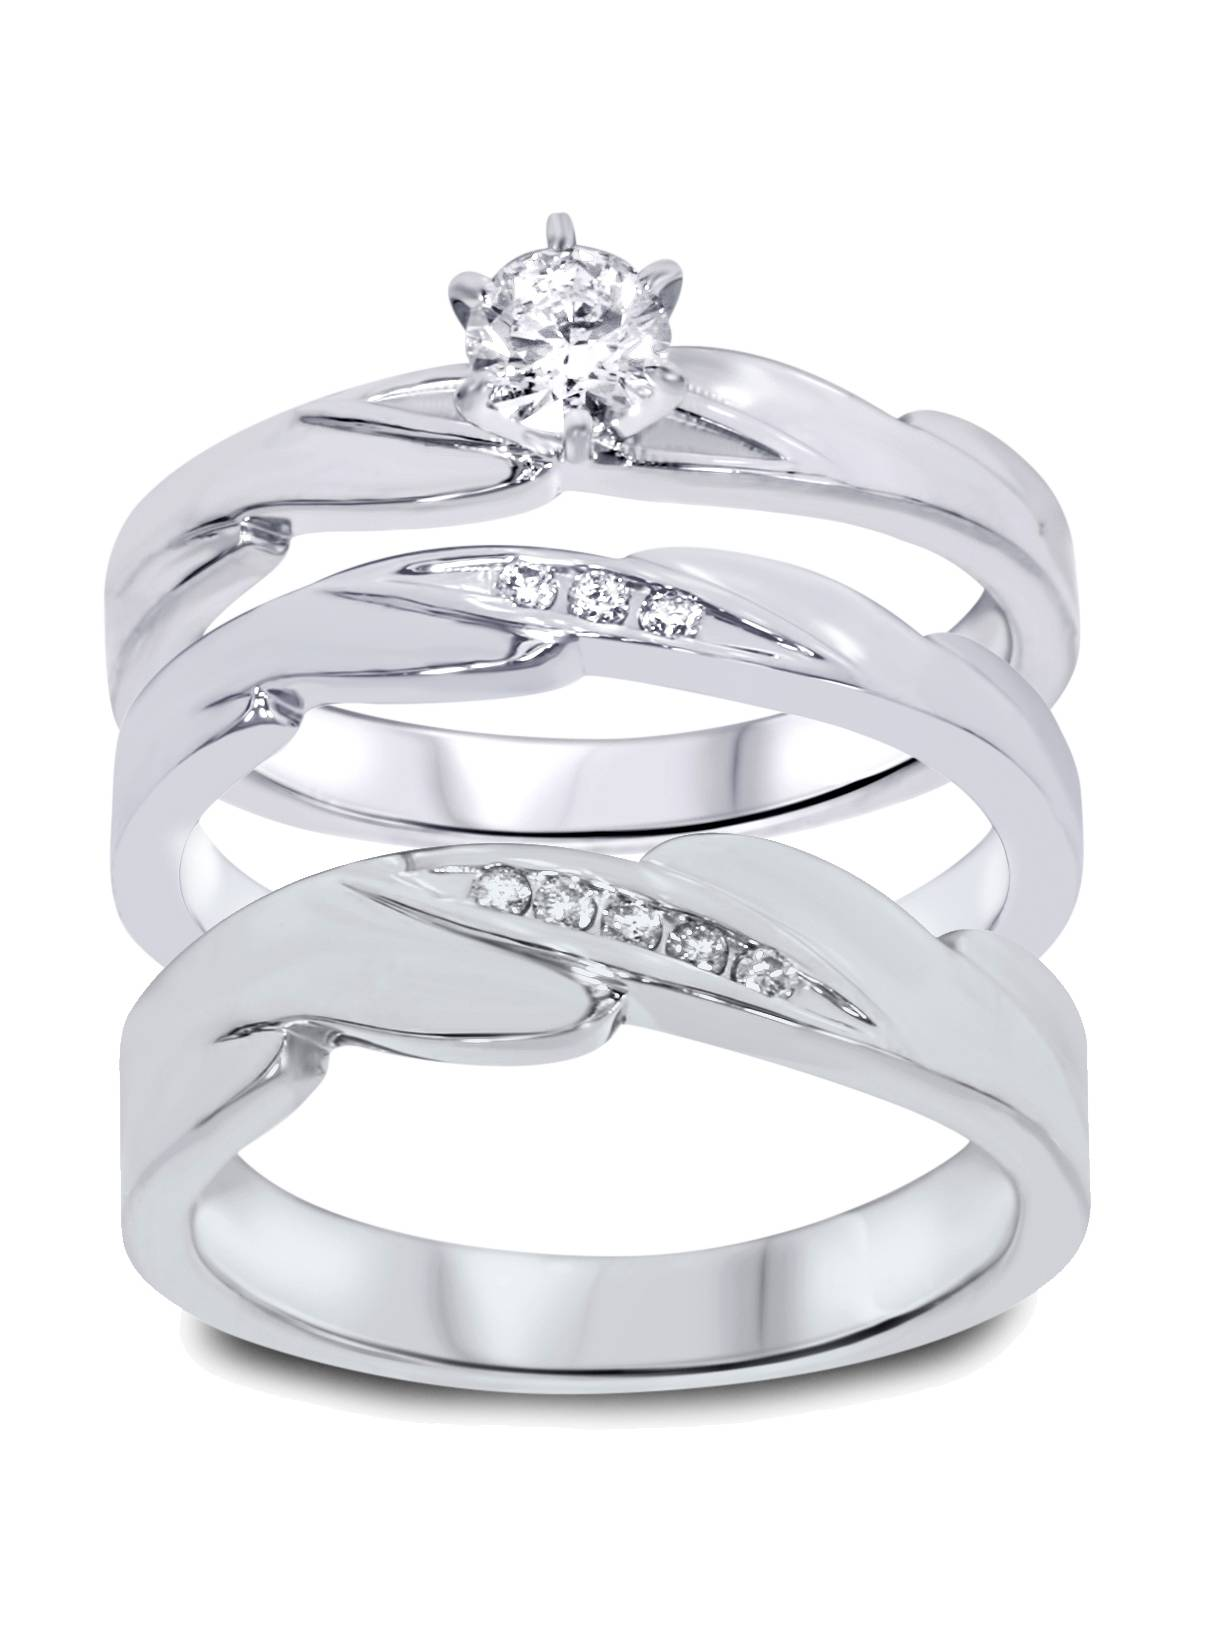 1/3ct Diamond Engagement Wedding Ring Trio Set 10K White Gold